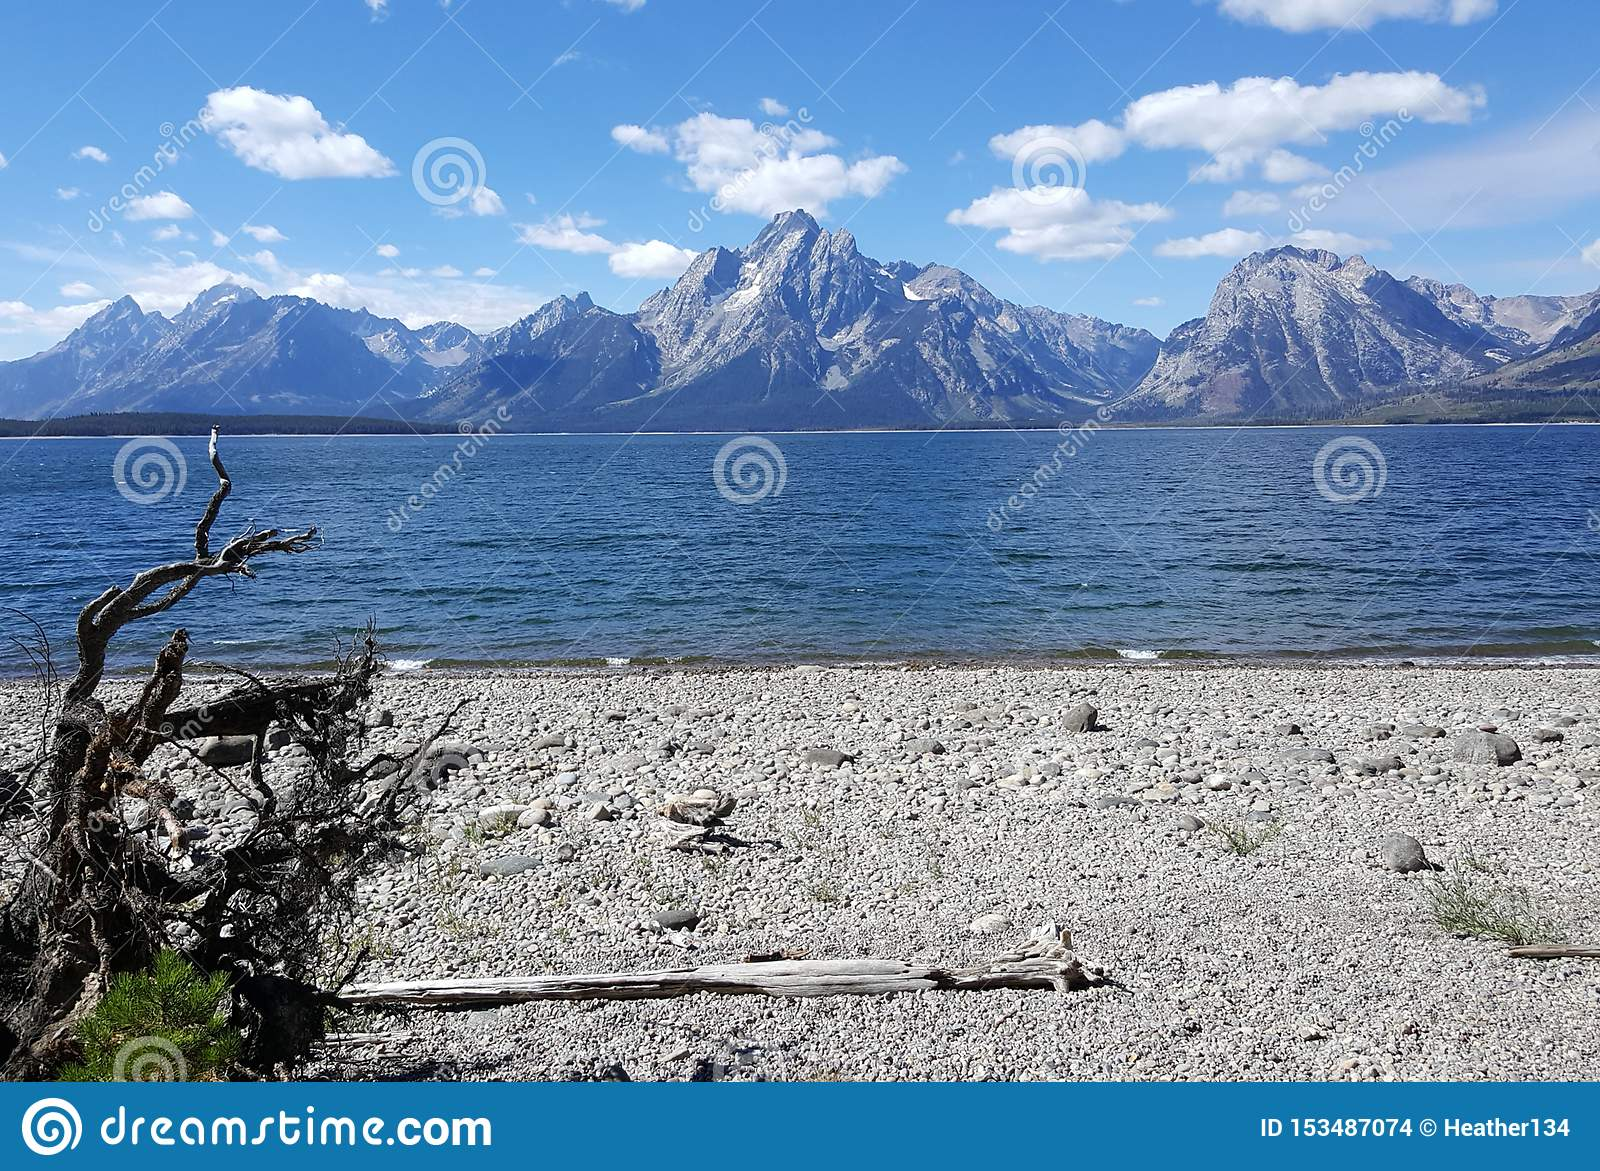 Secluded Beach with Majestic Views of the Tetons